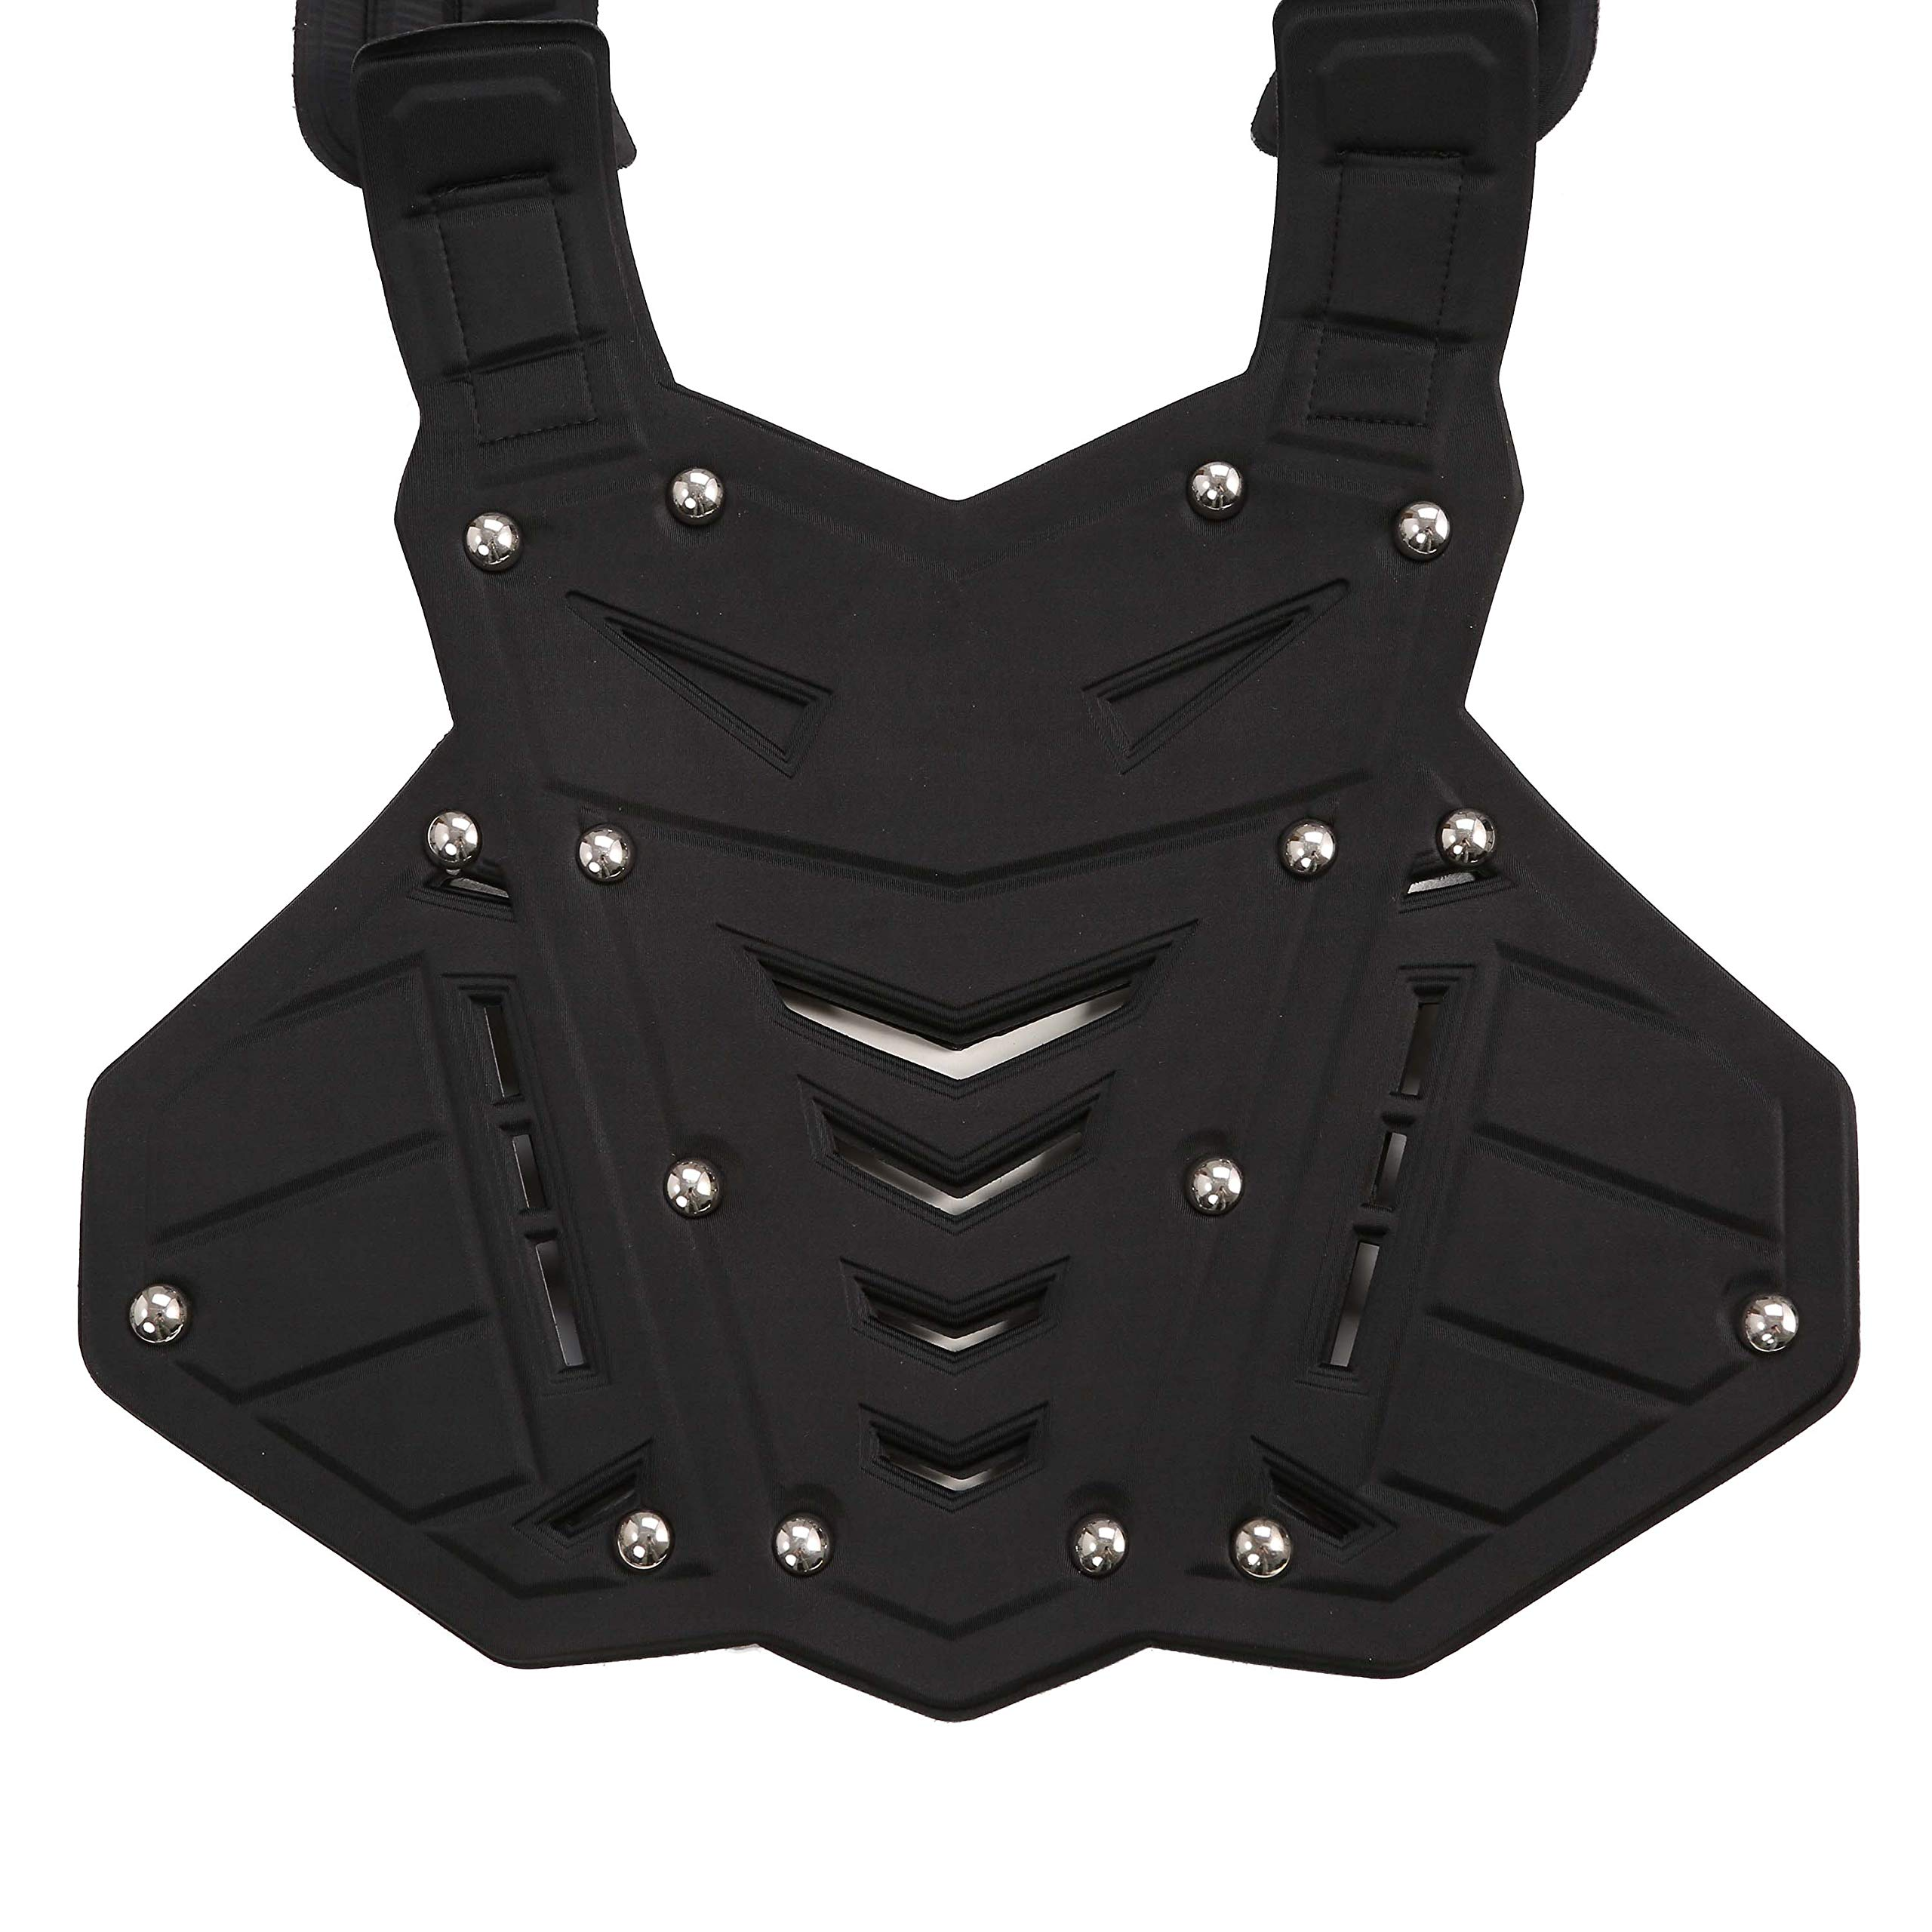 OHMOTOR Chest Back Protector Motorcycle Armor Vest Motorcycle Riding Chest Armor (Black) by OHMOTOR (Image #2)